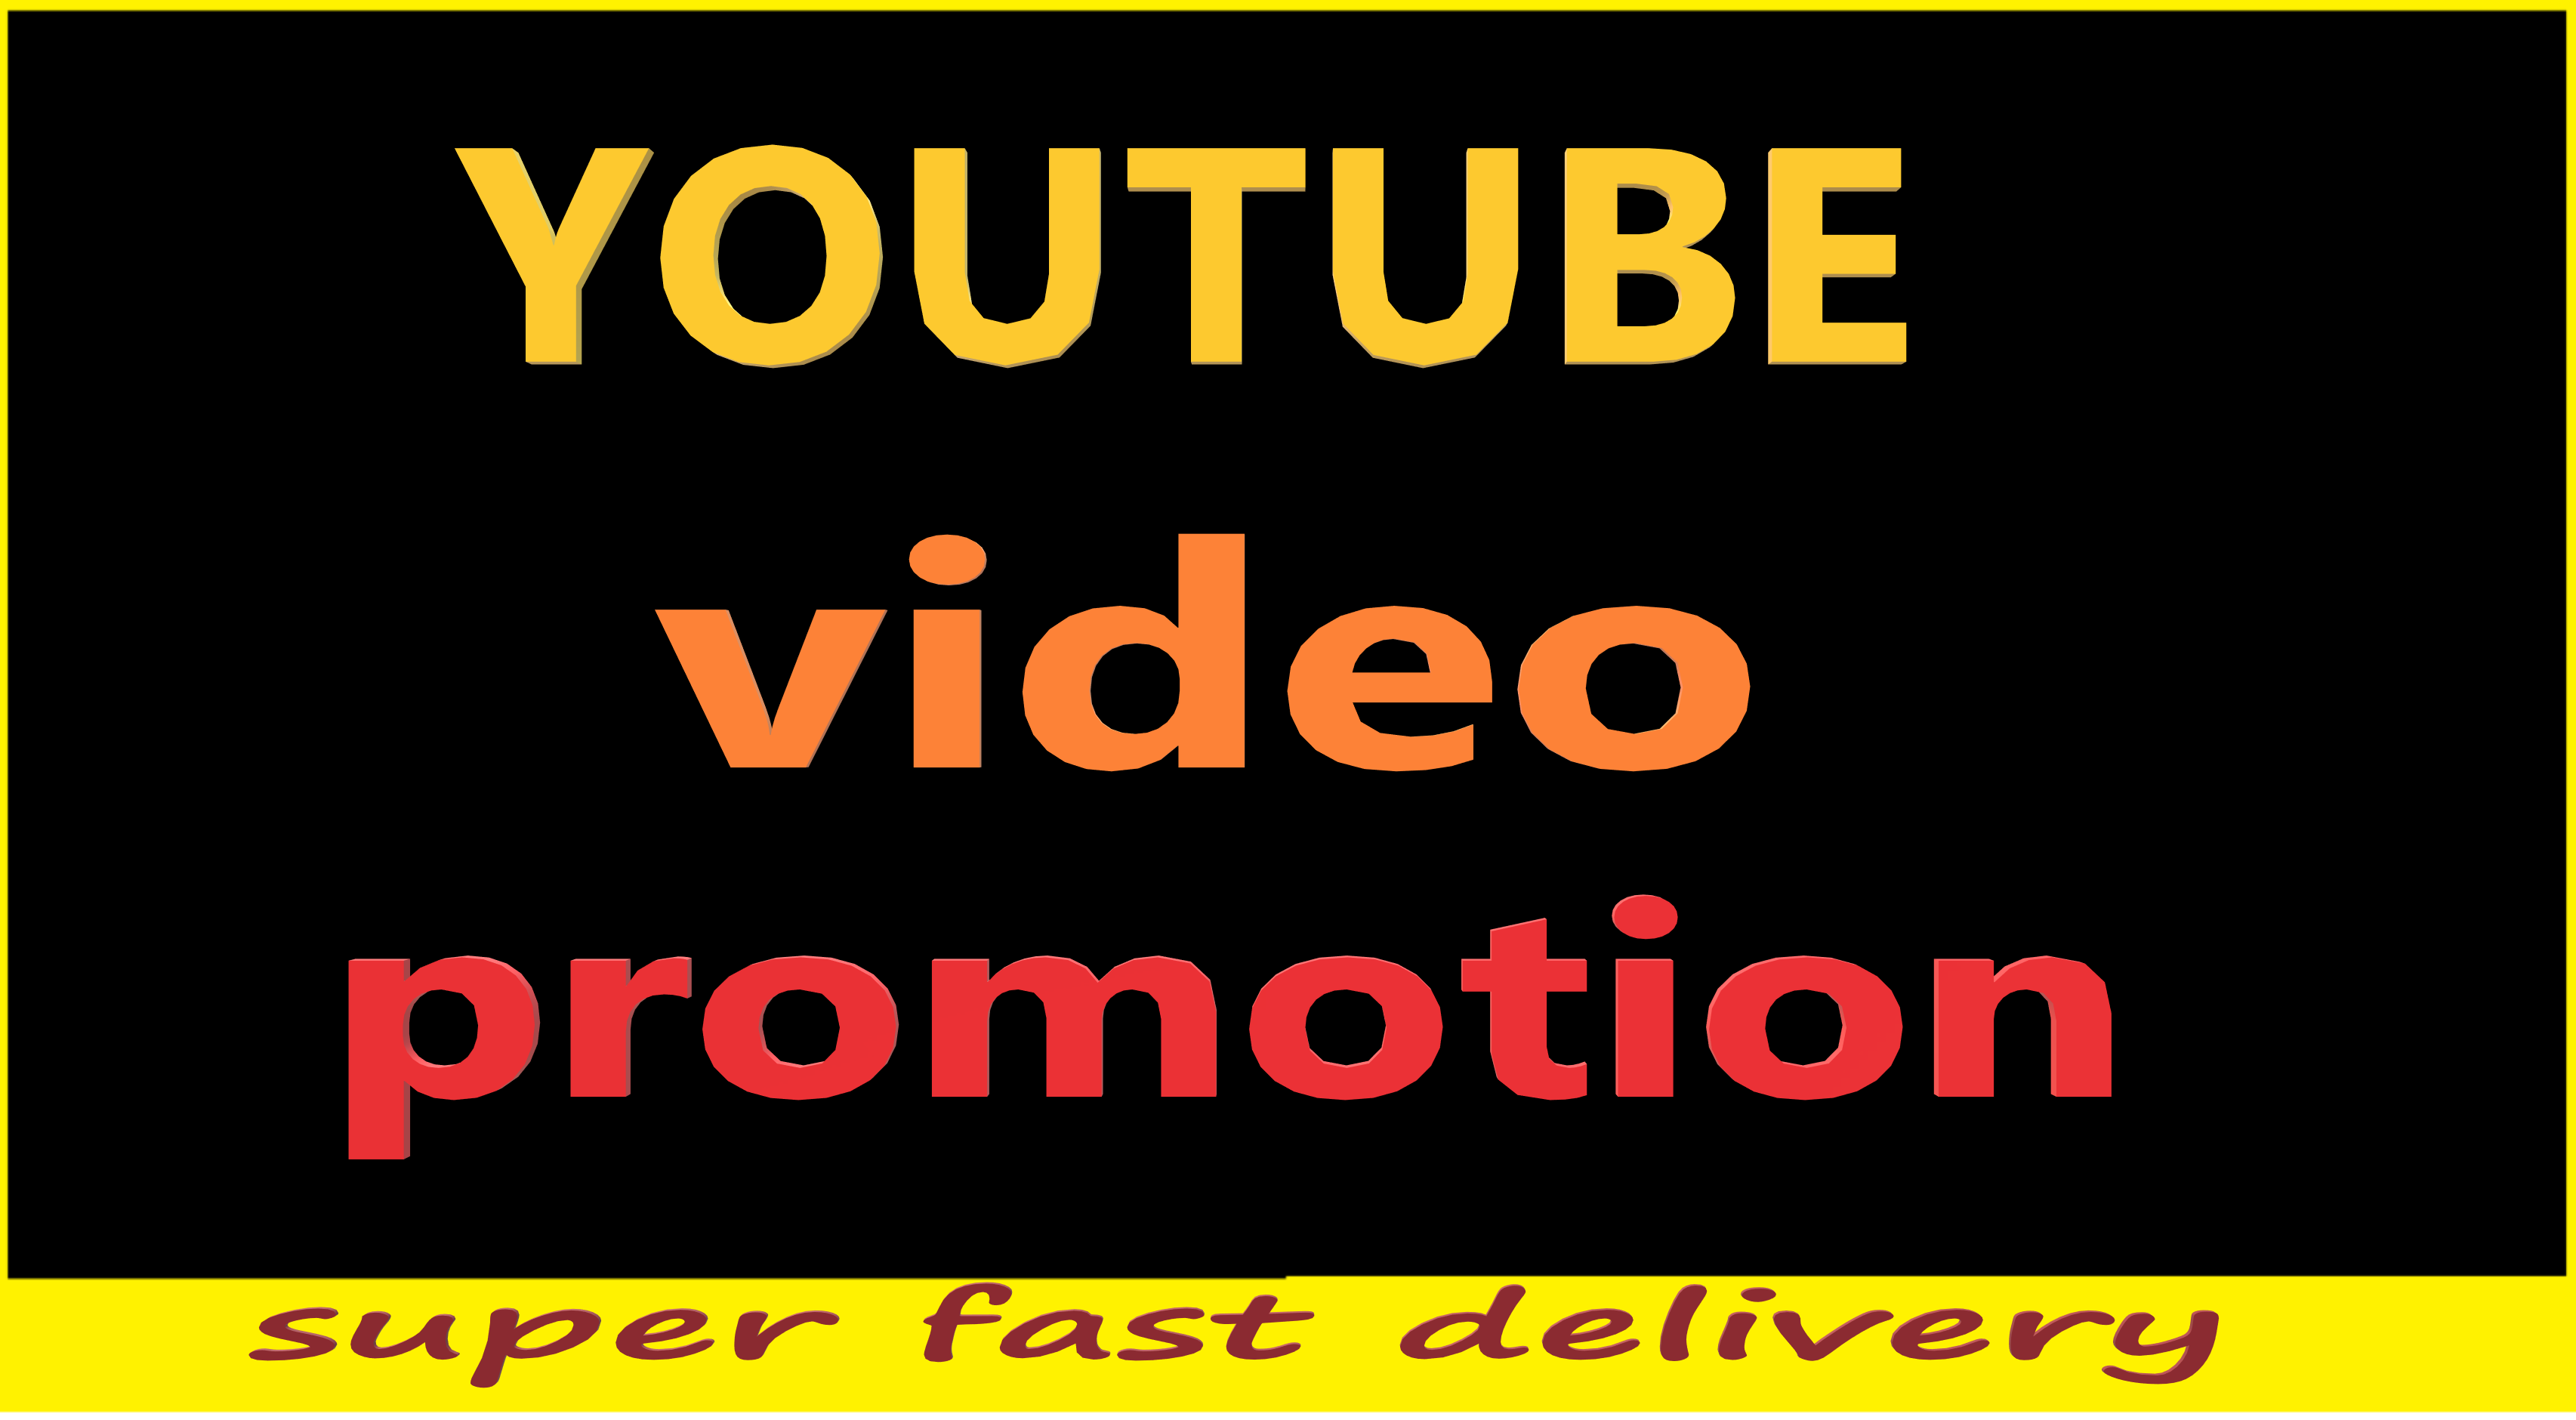 i will do promote YouTube video to make it viral